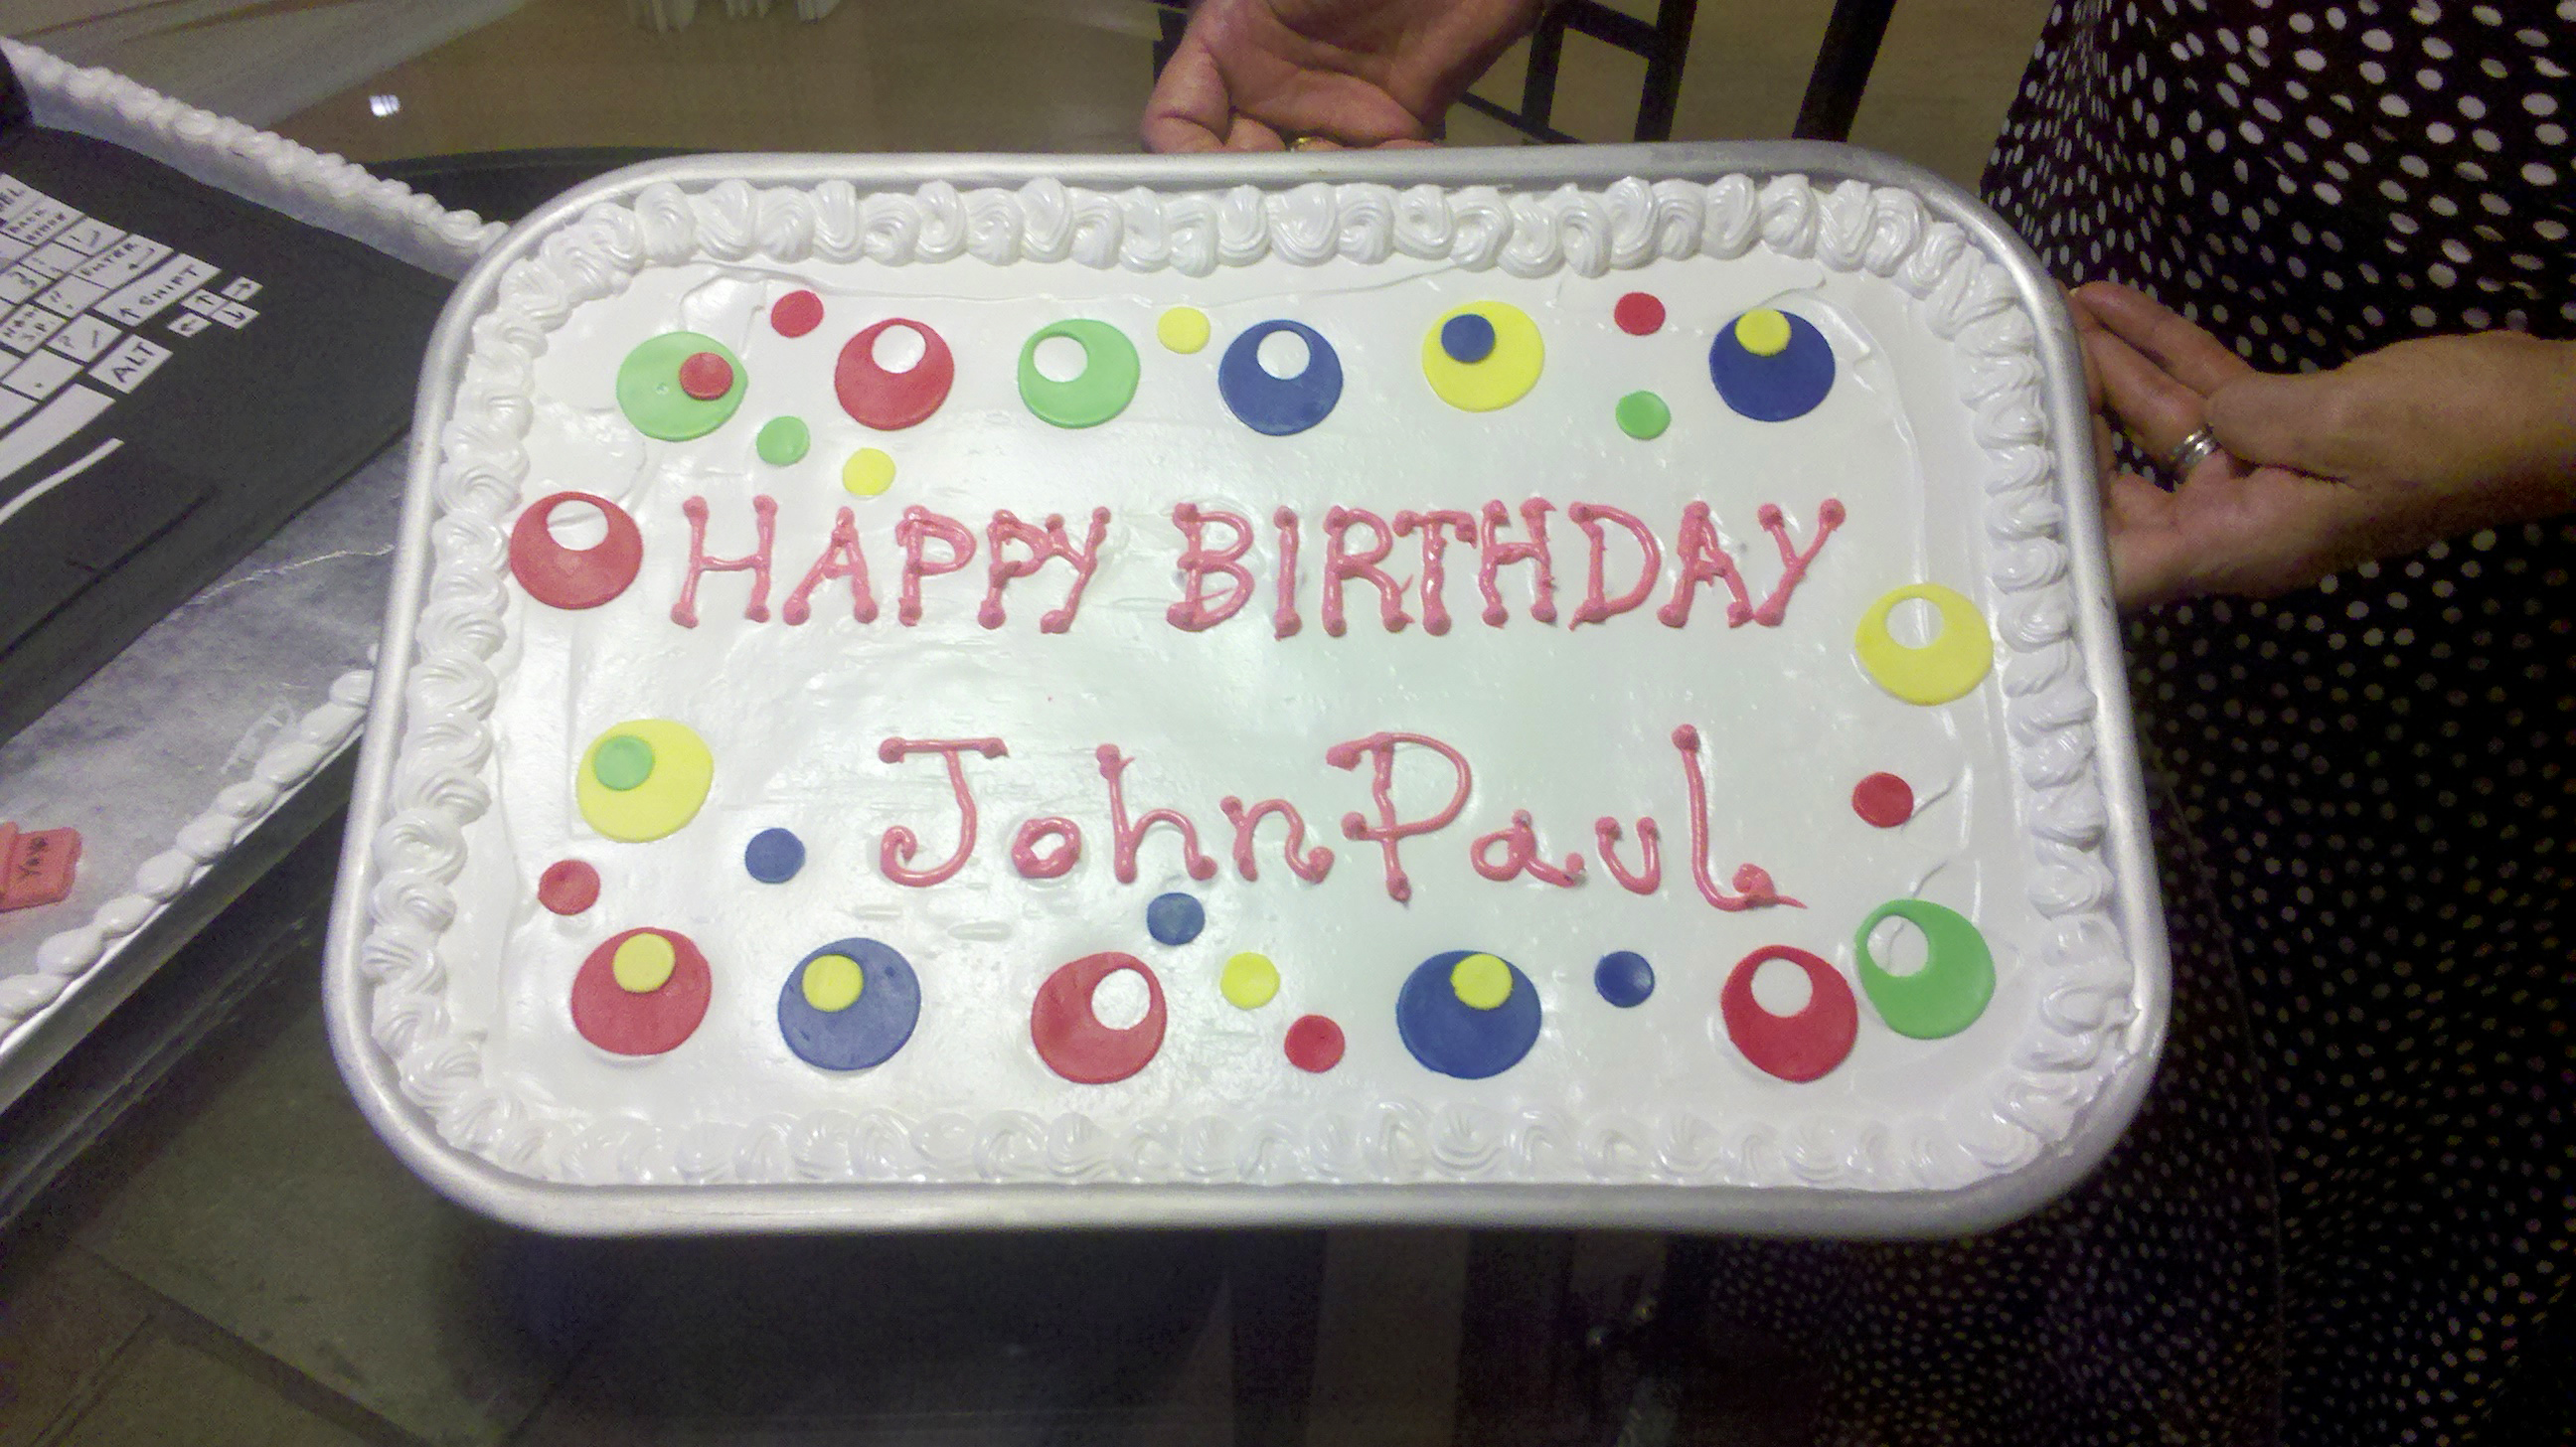 John Paul De Vivo's Birthday Cakes  My Yayas Cakes